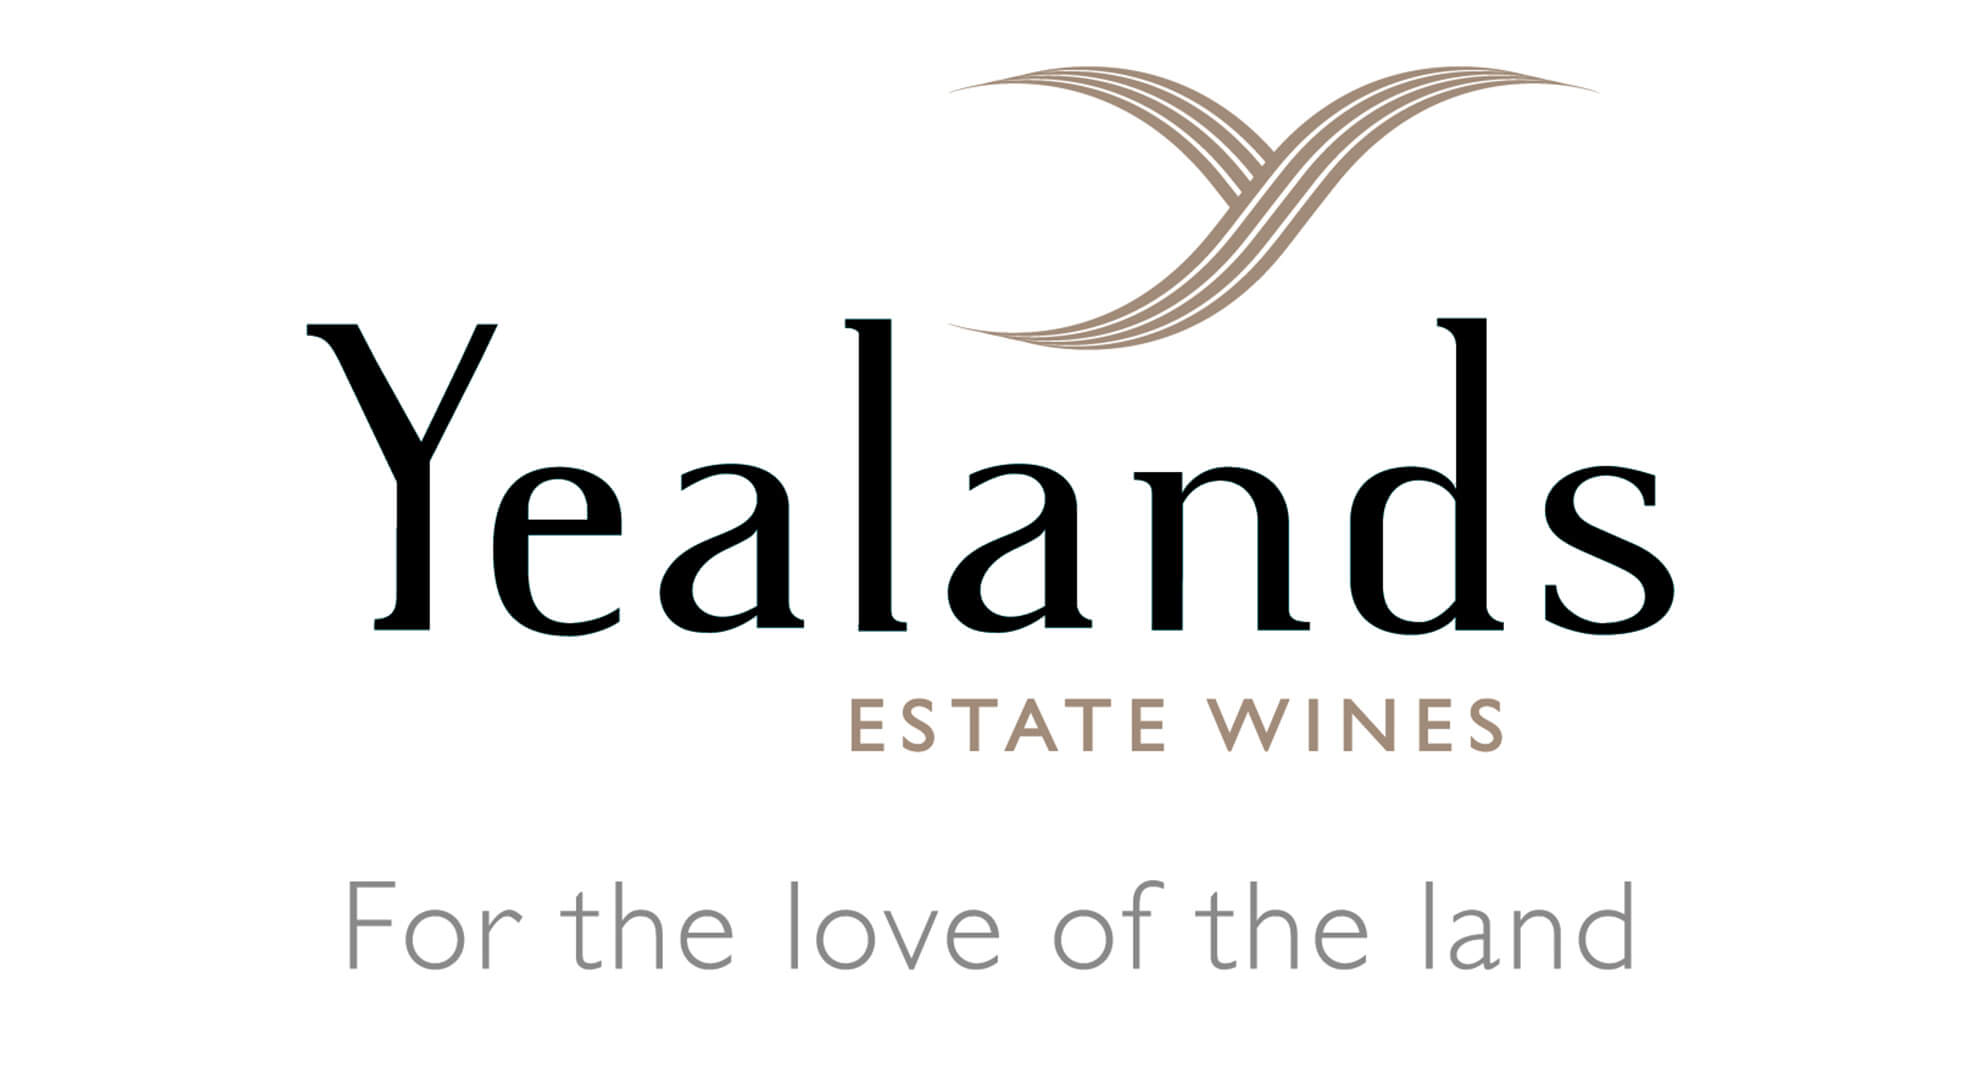 New Zealand Wine Dinner with Yealands of Marlborough Valley